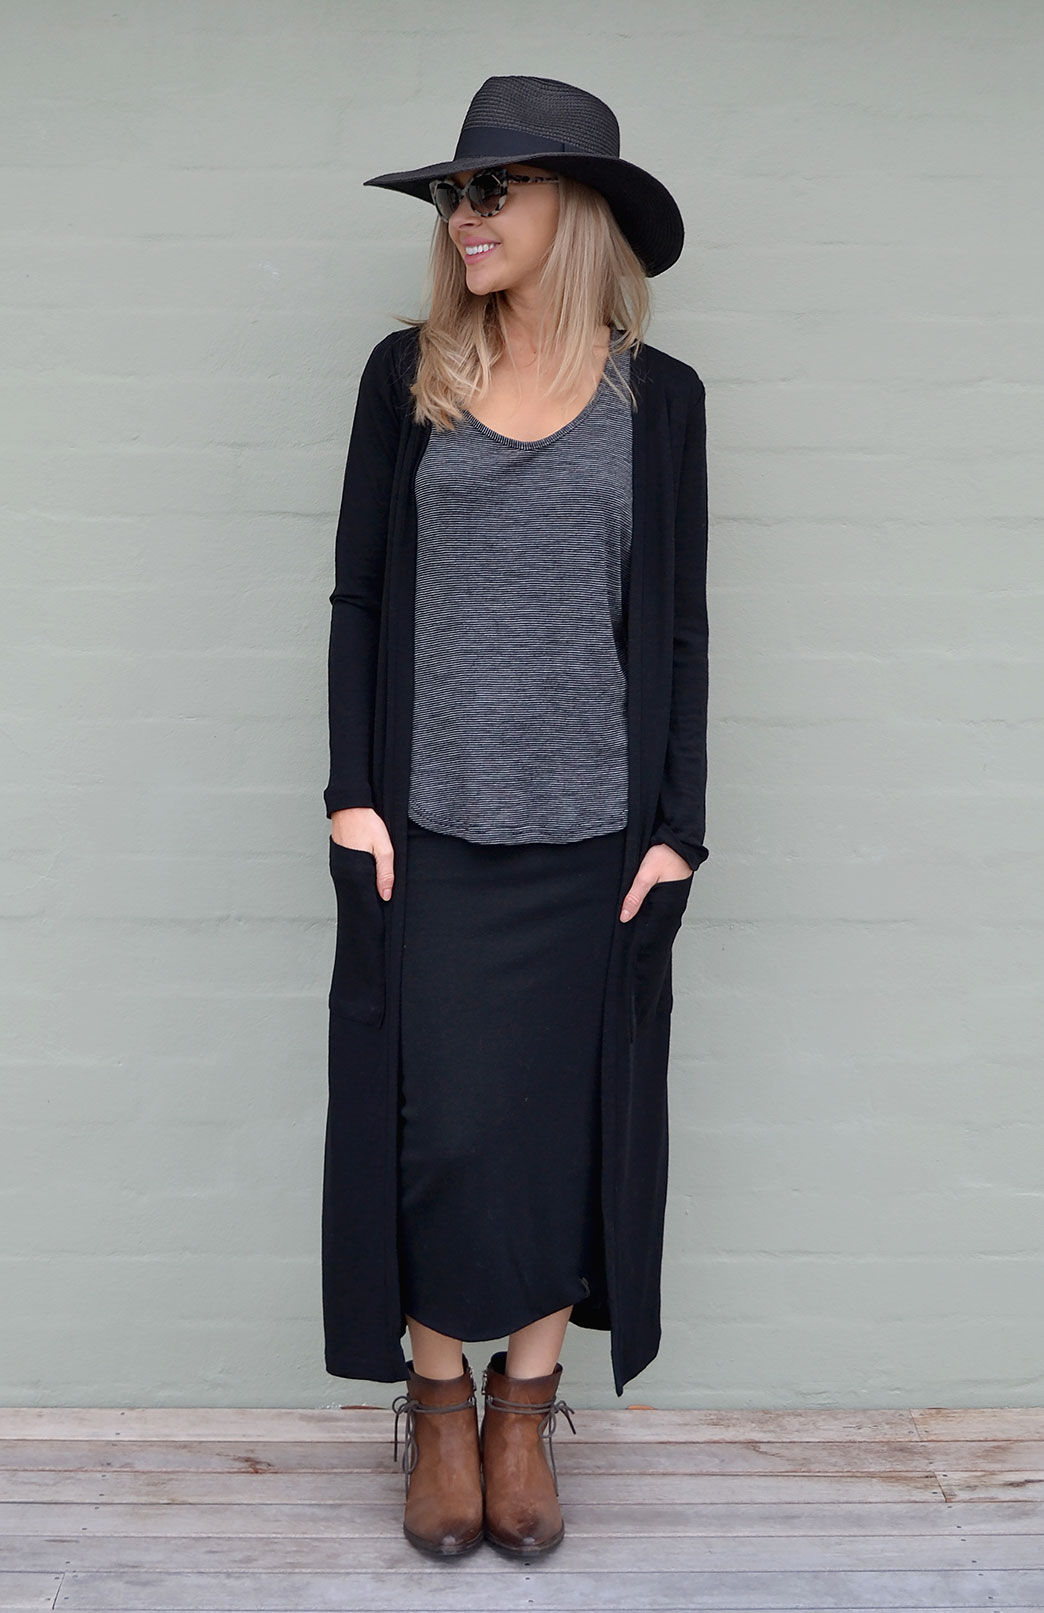 Coatigan - Women's Long Line Classic Black Long Sleeved Cardigan with Pockets - Smitten Merino Tasmania Australia